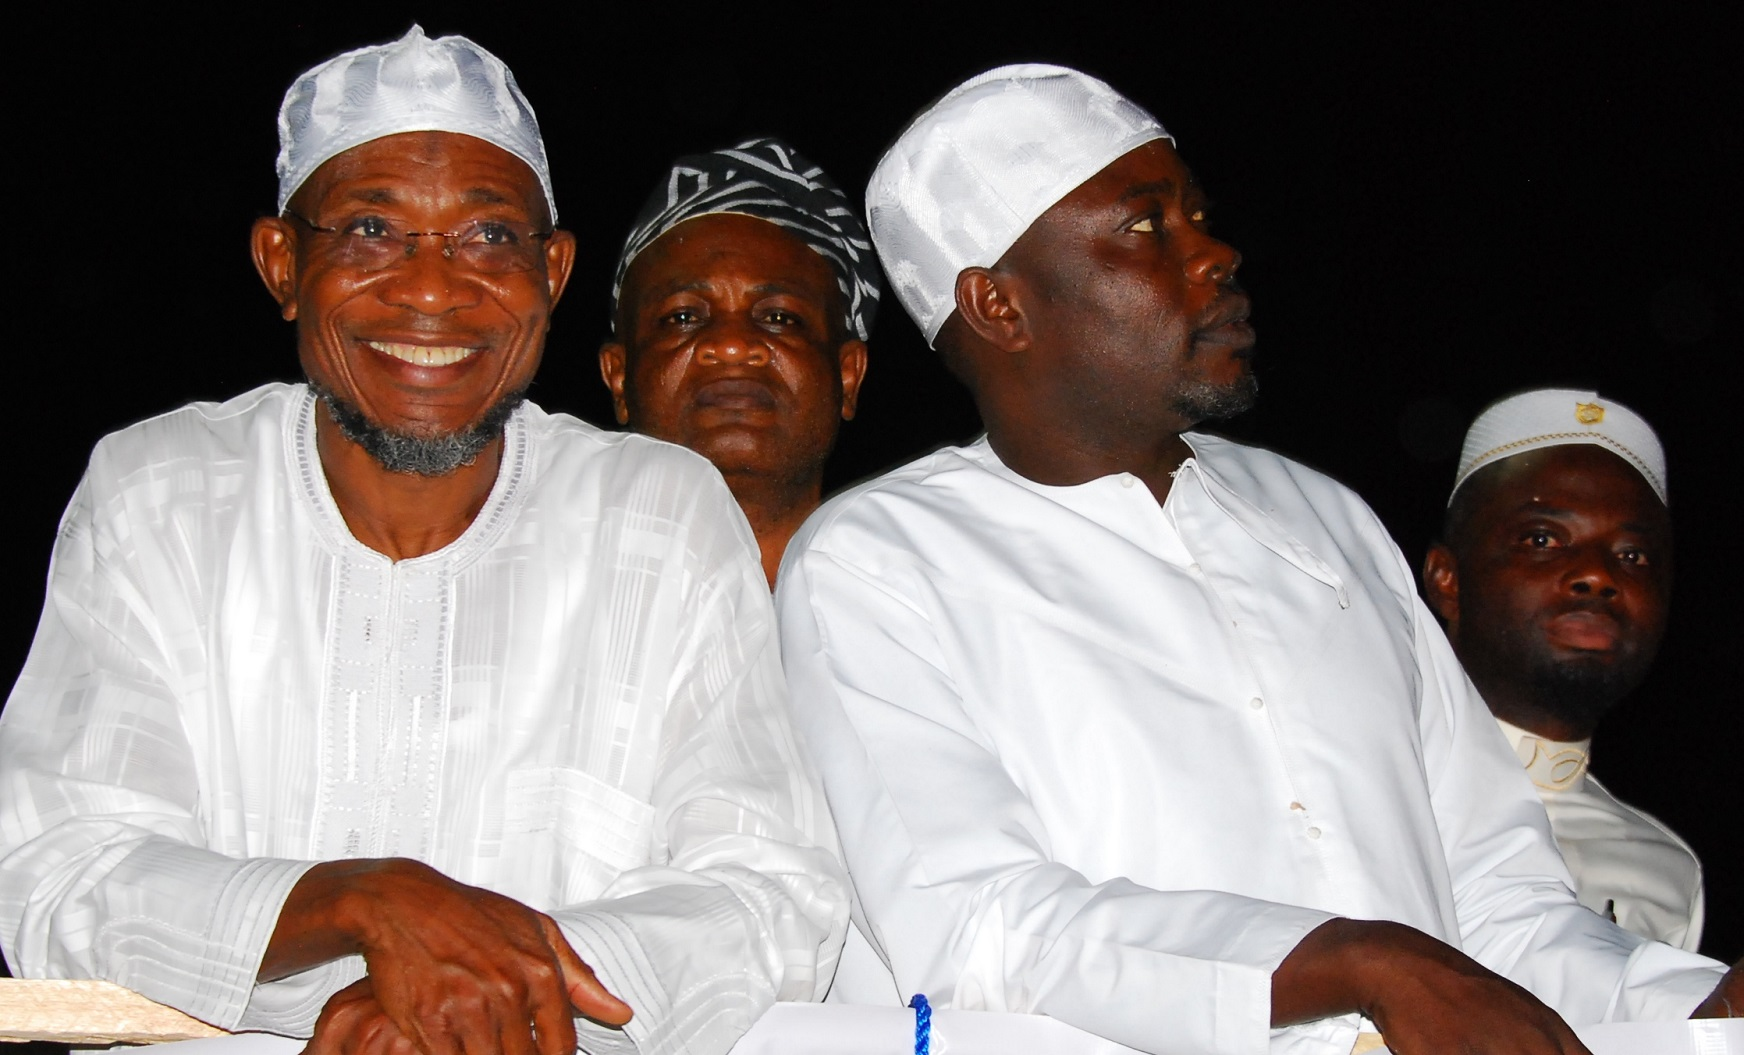 From left, Governor State of Osun, Ogbeni Rauf Aregbesola; Commissioner for Home Affairs, Culture and Tourism, Alhaji Sikiru Ayedun; Commissioner for Local Government and Chieftaincy Affairs, Barrister Kolapo Alimi and other, during the Pyrotechnics and Fireworks Display to Herald the New Hijirah 1436AH at Nelson Mandela Freedom Park, Osogbo, State of Osun on Friday 24-10-2014